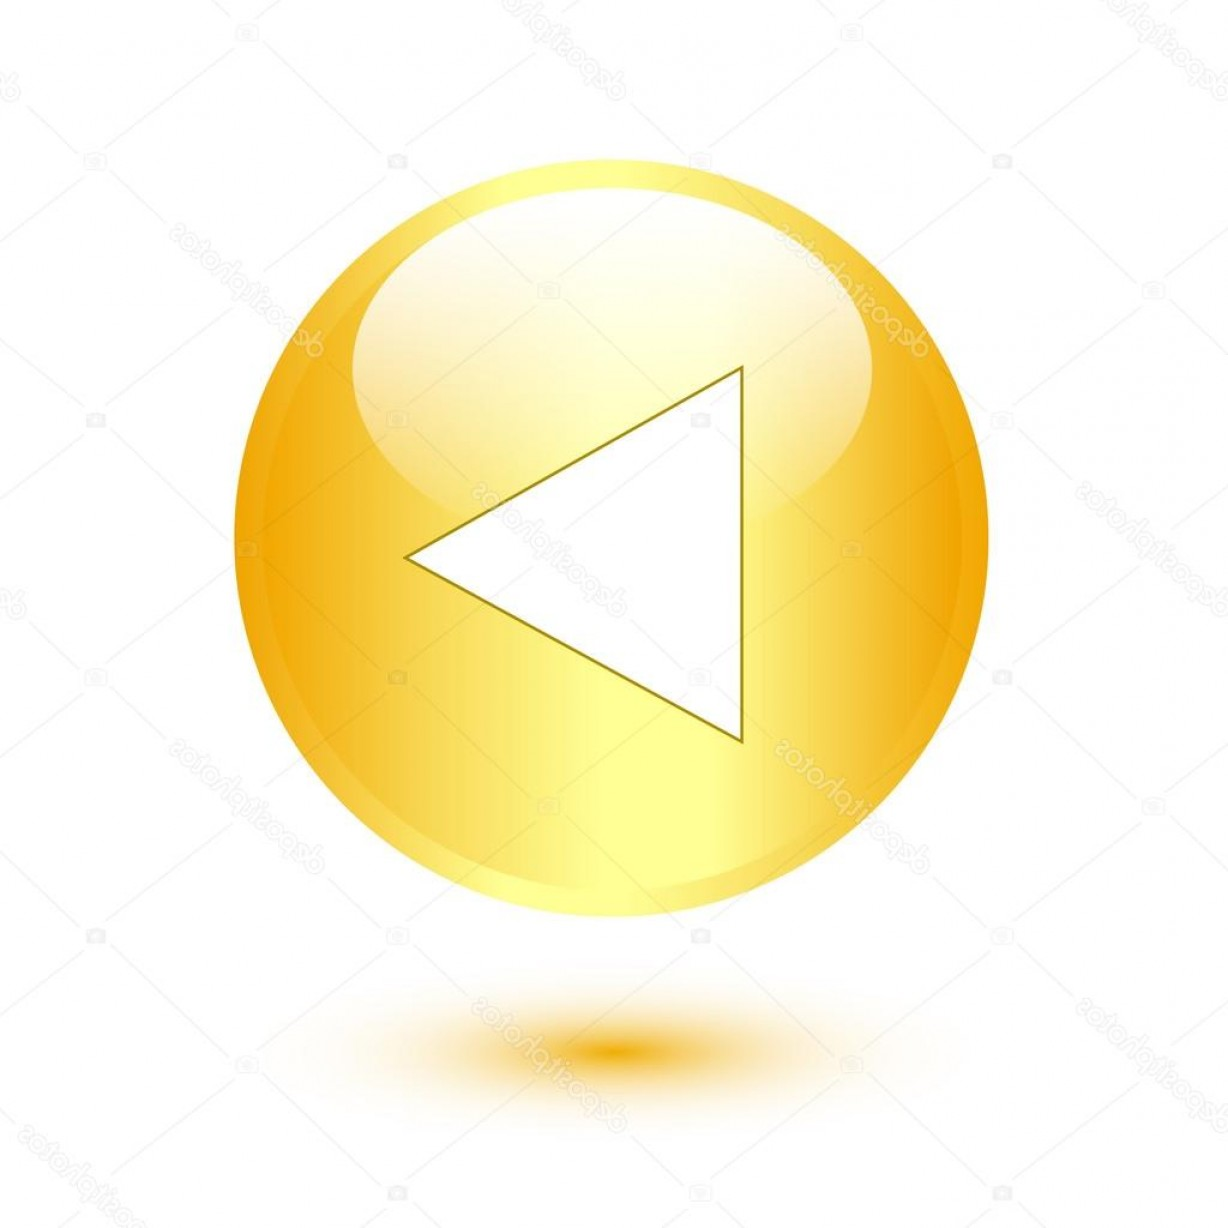 Gold Button Vector: Stock Illustration Play Icon On Gold